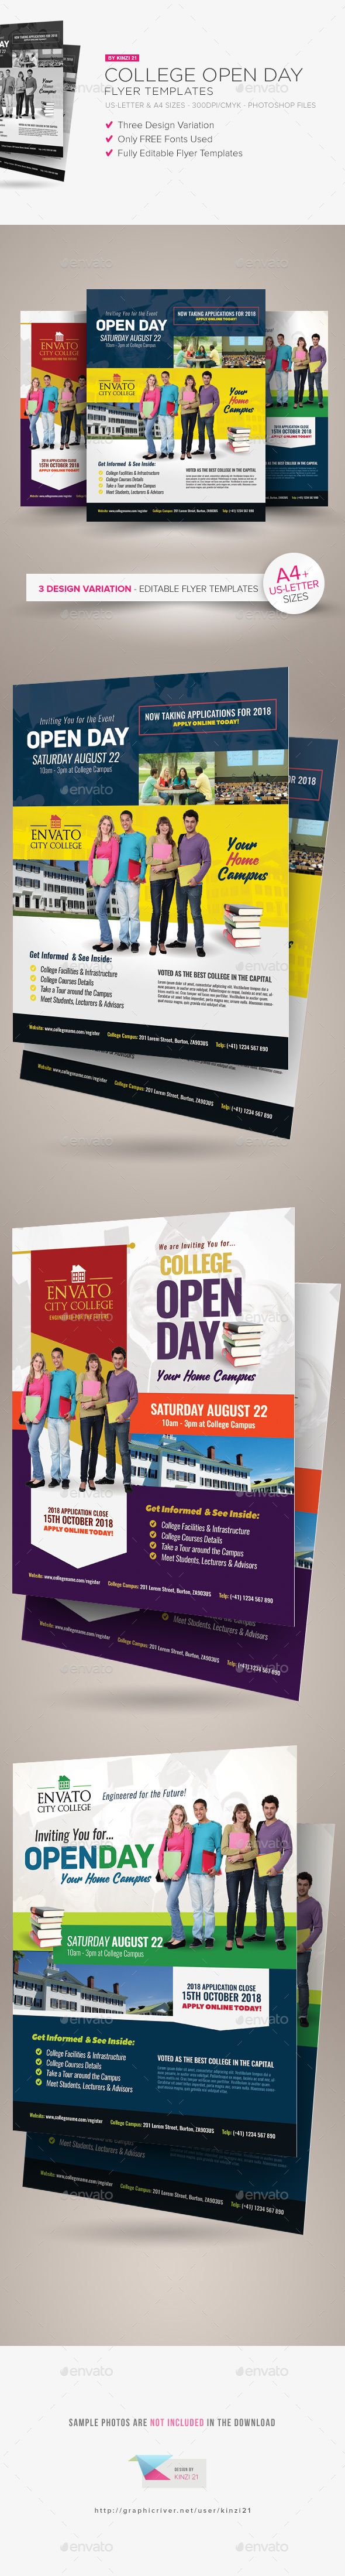 best images about flyer templates roofing college open day flyer templates